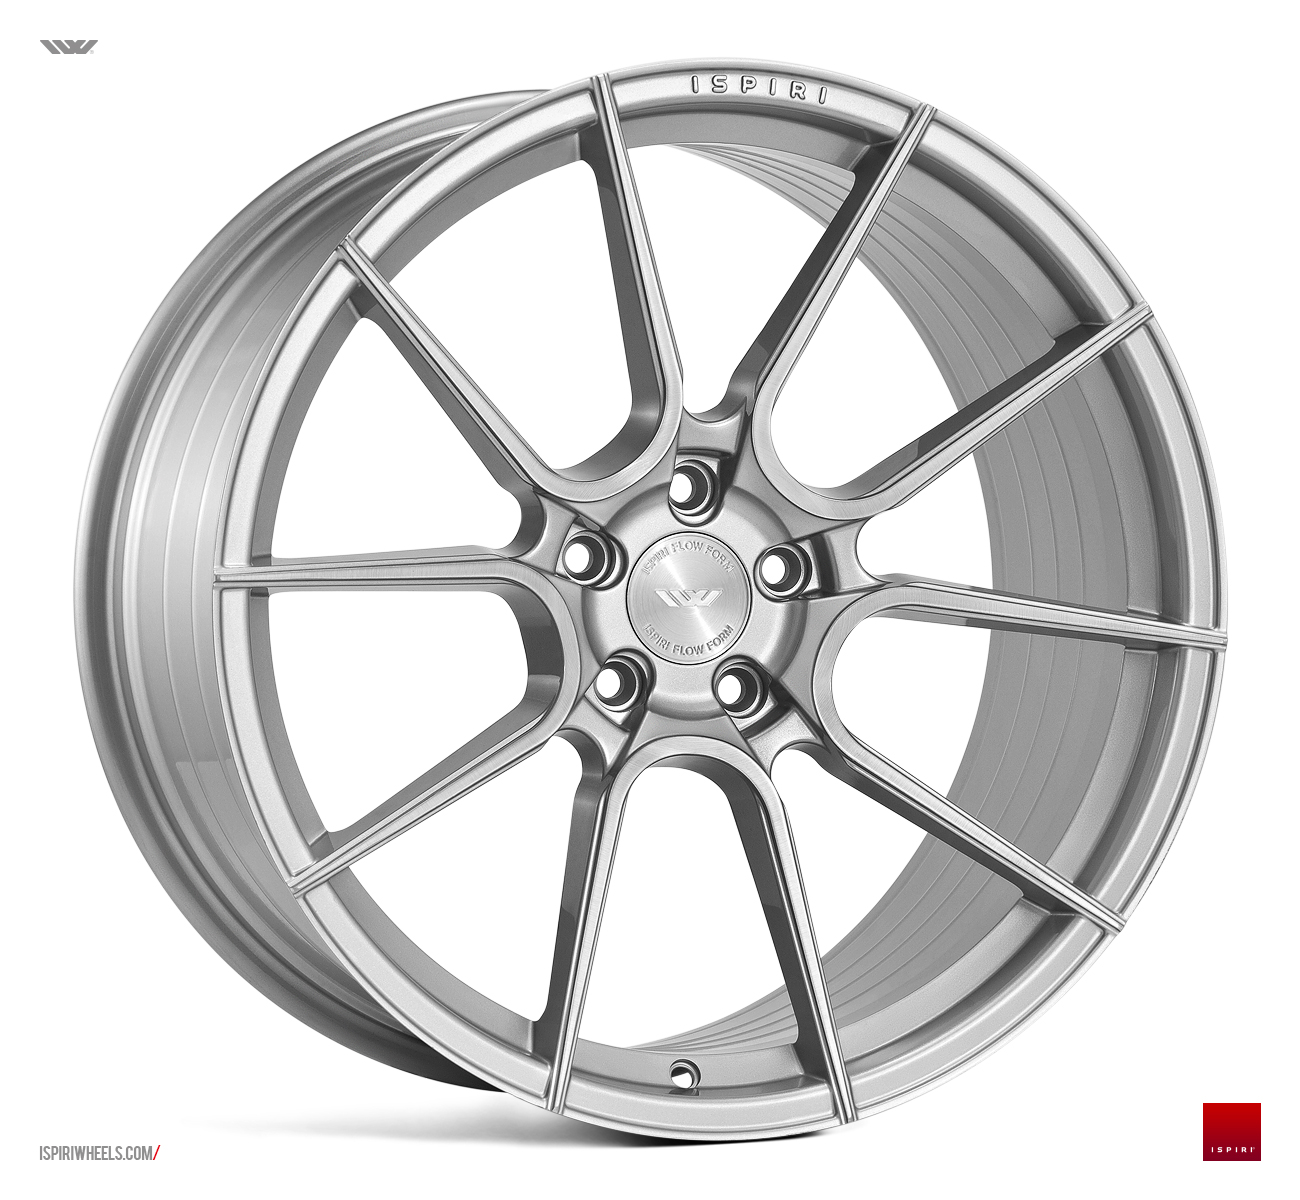 "NEW 20"" ISPIRI FFR6 TWIN 5 SPOKE ALLOY WHEELS IN PURE SILVER BRUSHED, WIDER 10"" or 10.5"" REAR"